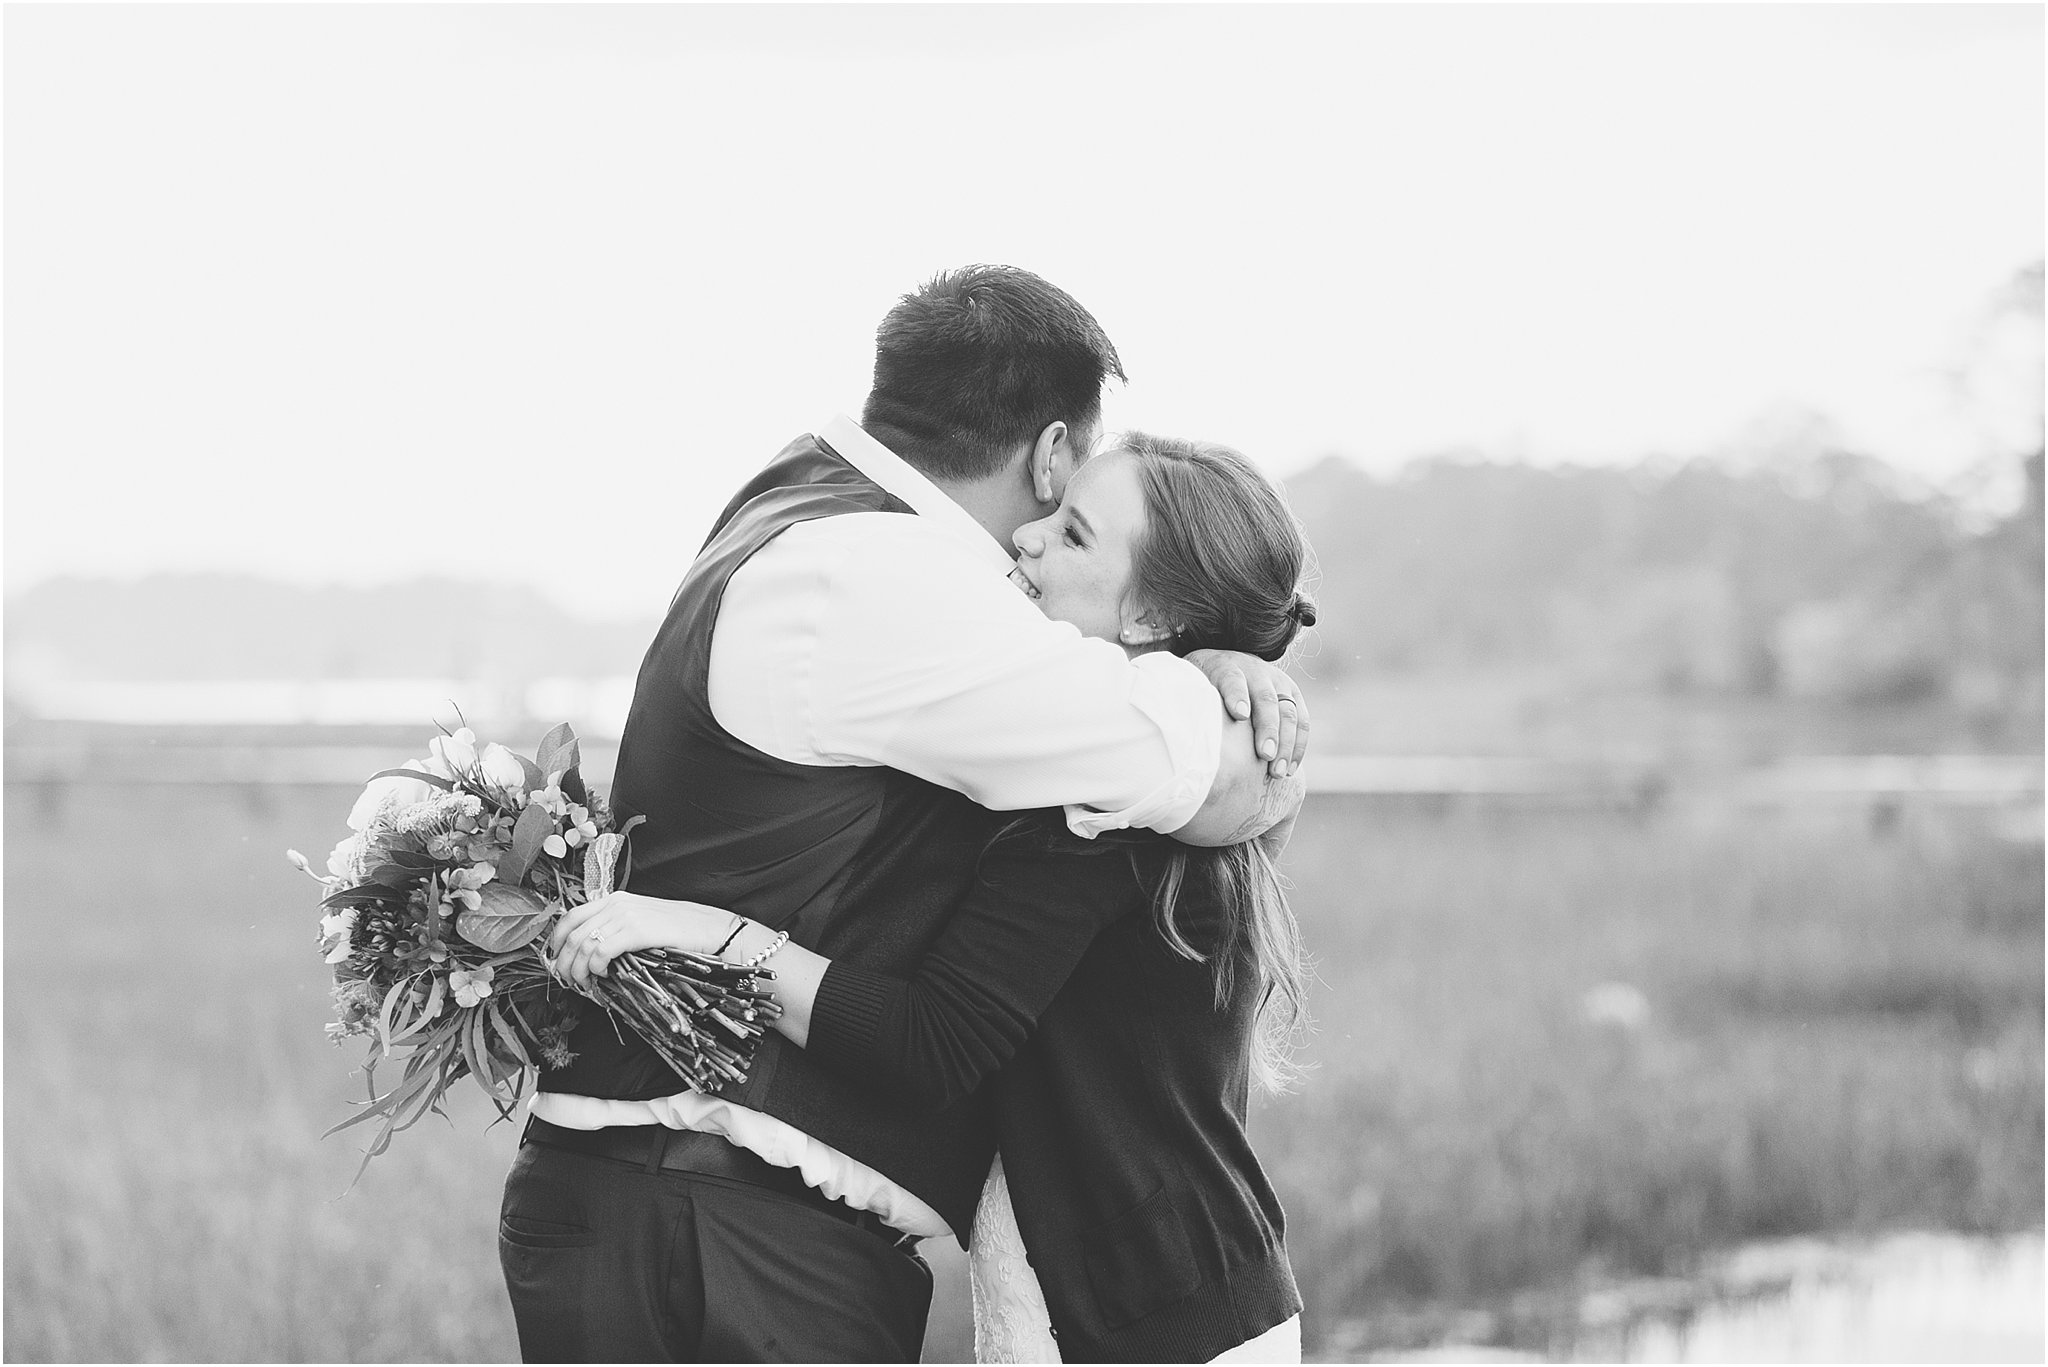 jessica_ryan_photography_virginia_virginiabeachwedding_bayislandvirginiabeach_backyardwedding_waterfrontwedding_intimatewedding_vintagewedding_1615